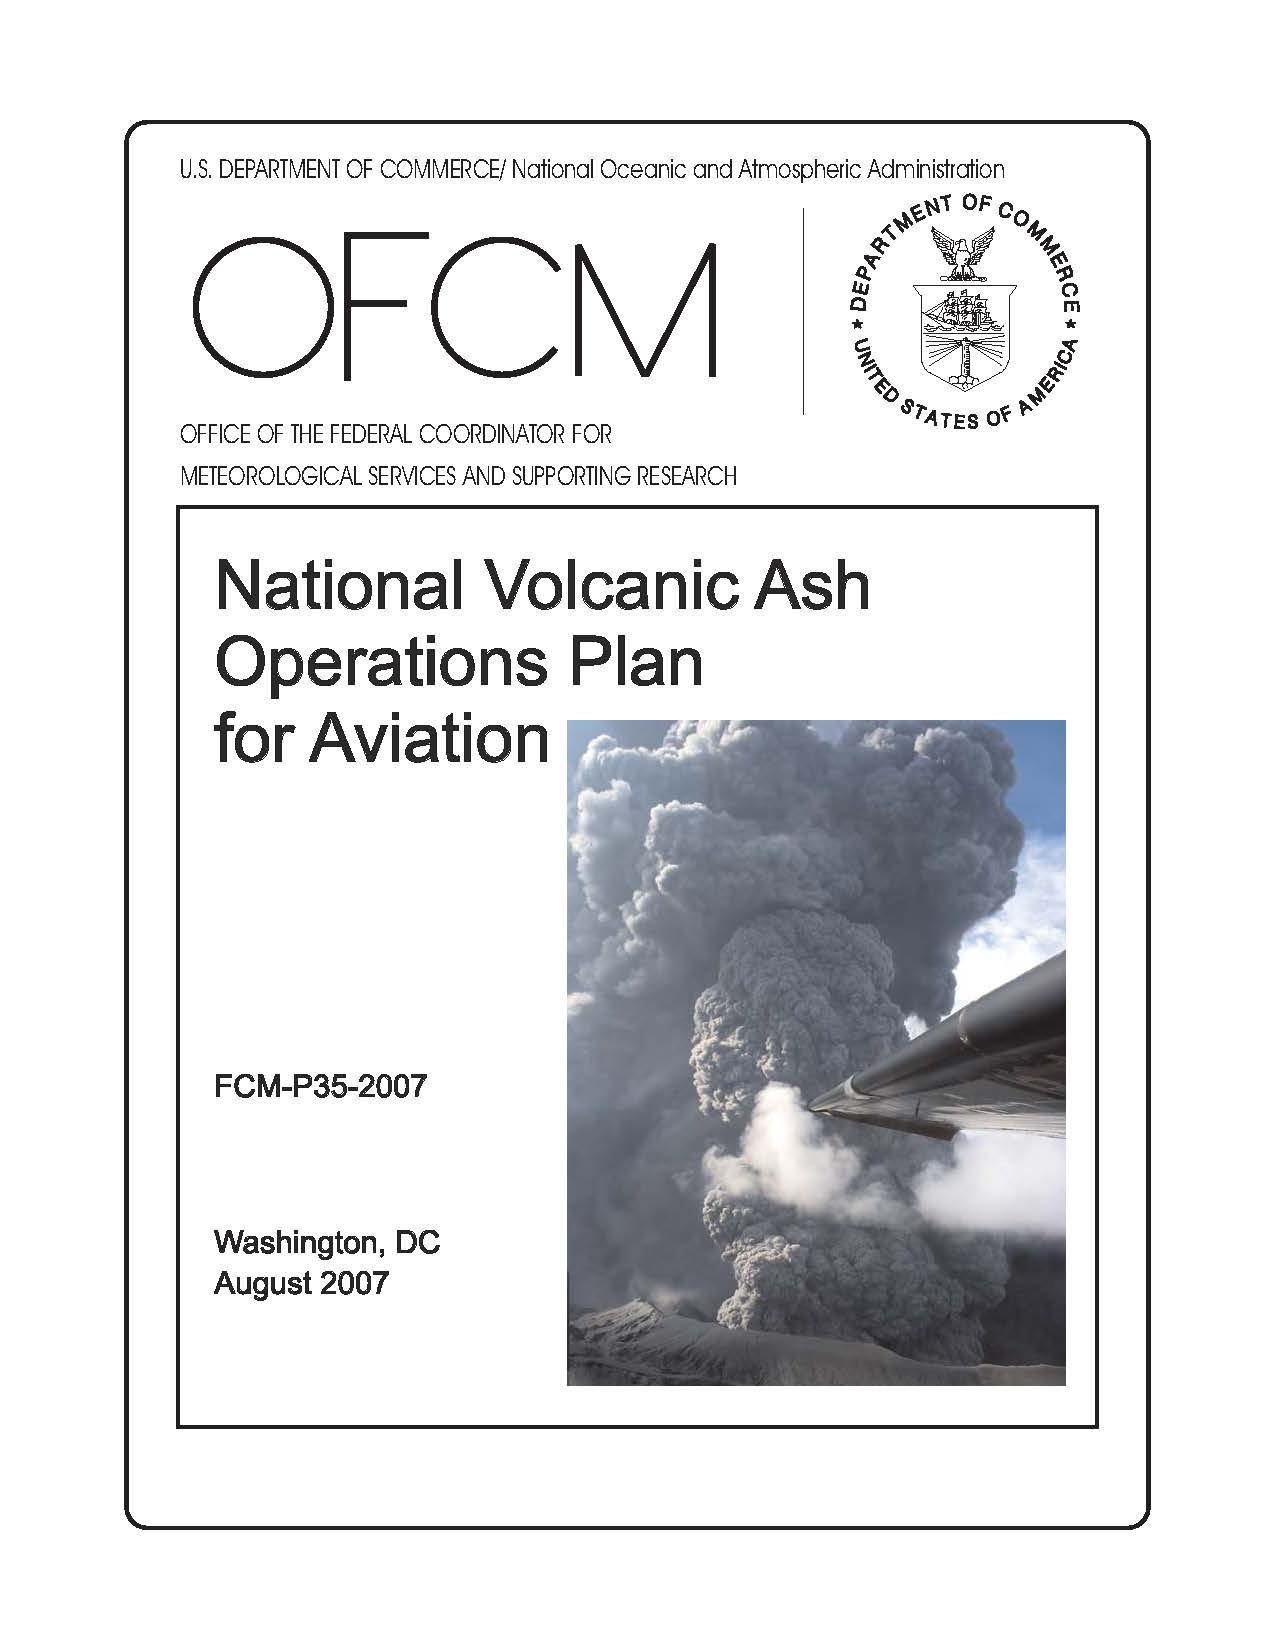 Image of the front cover of the National Volcanic Ash Operations Plan for Aviation